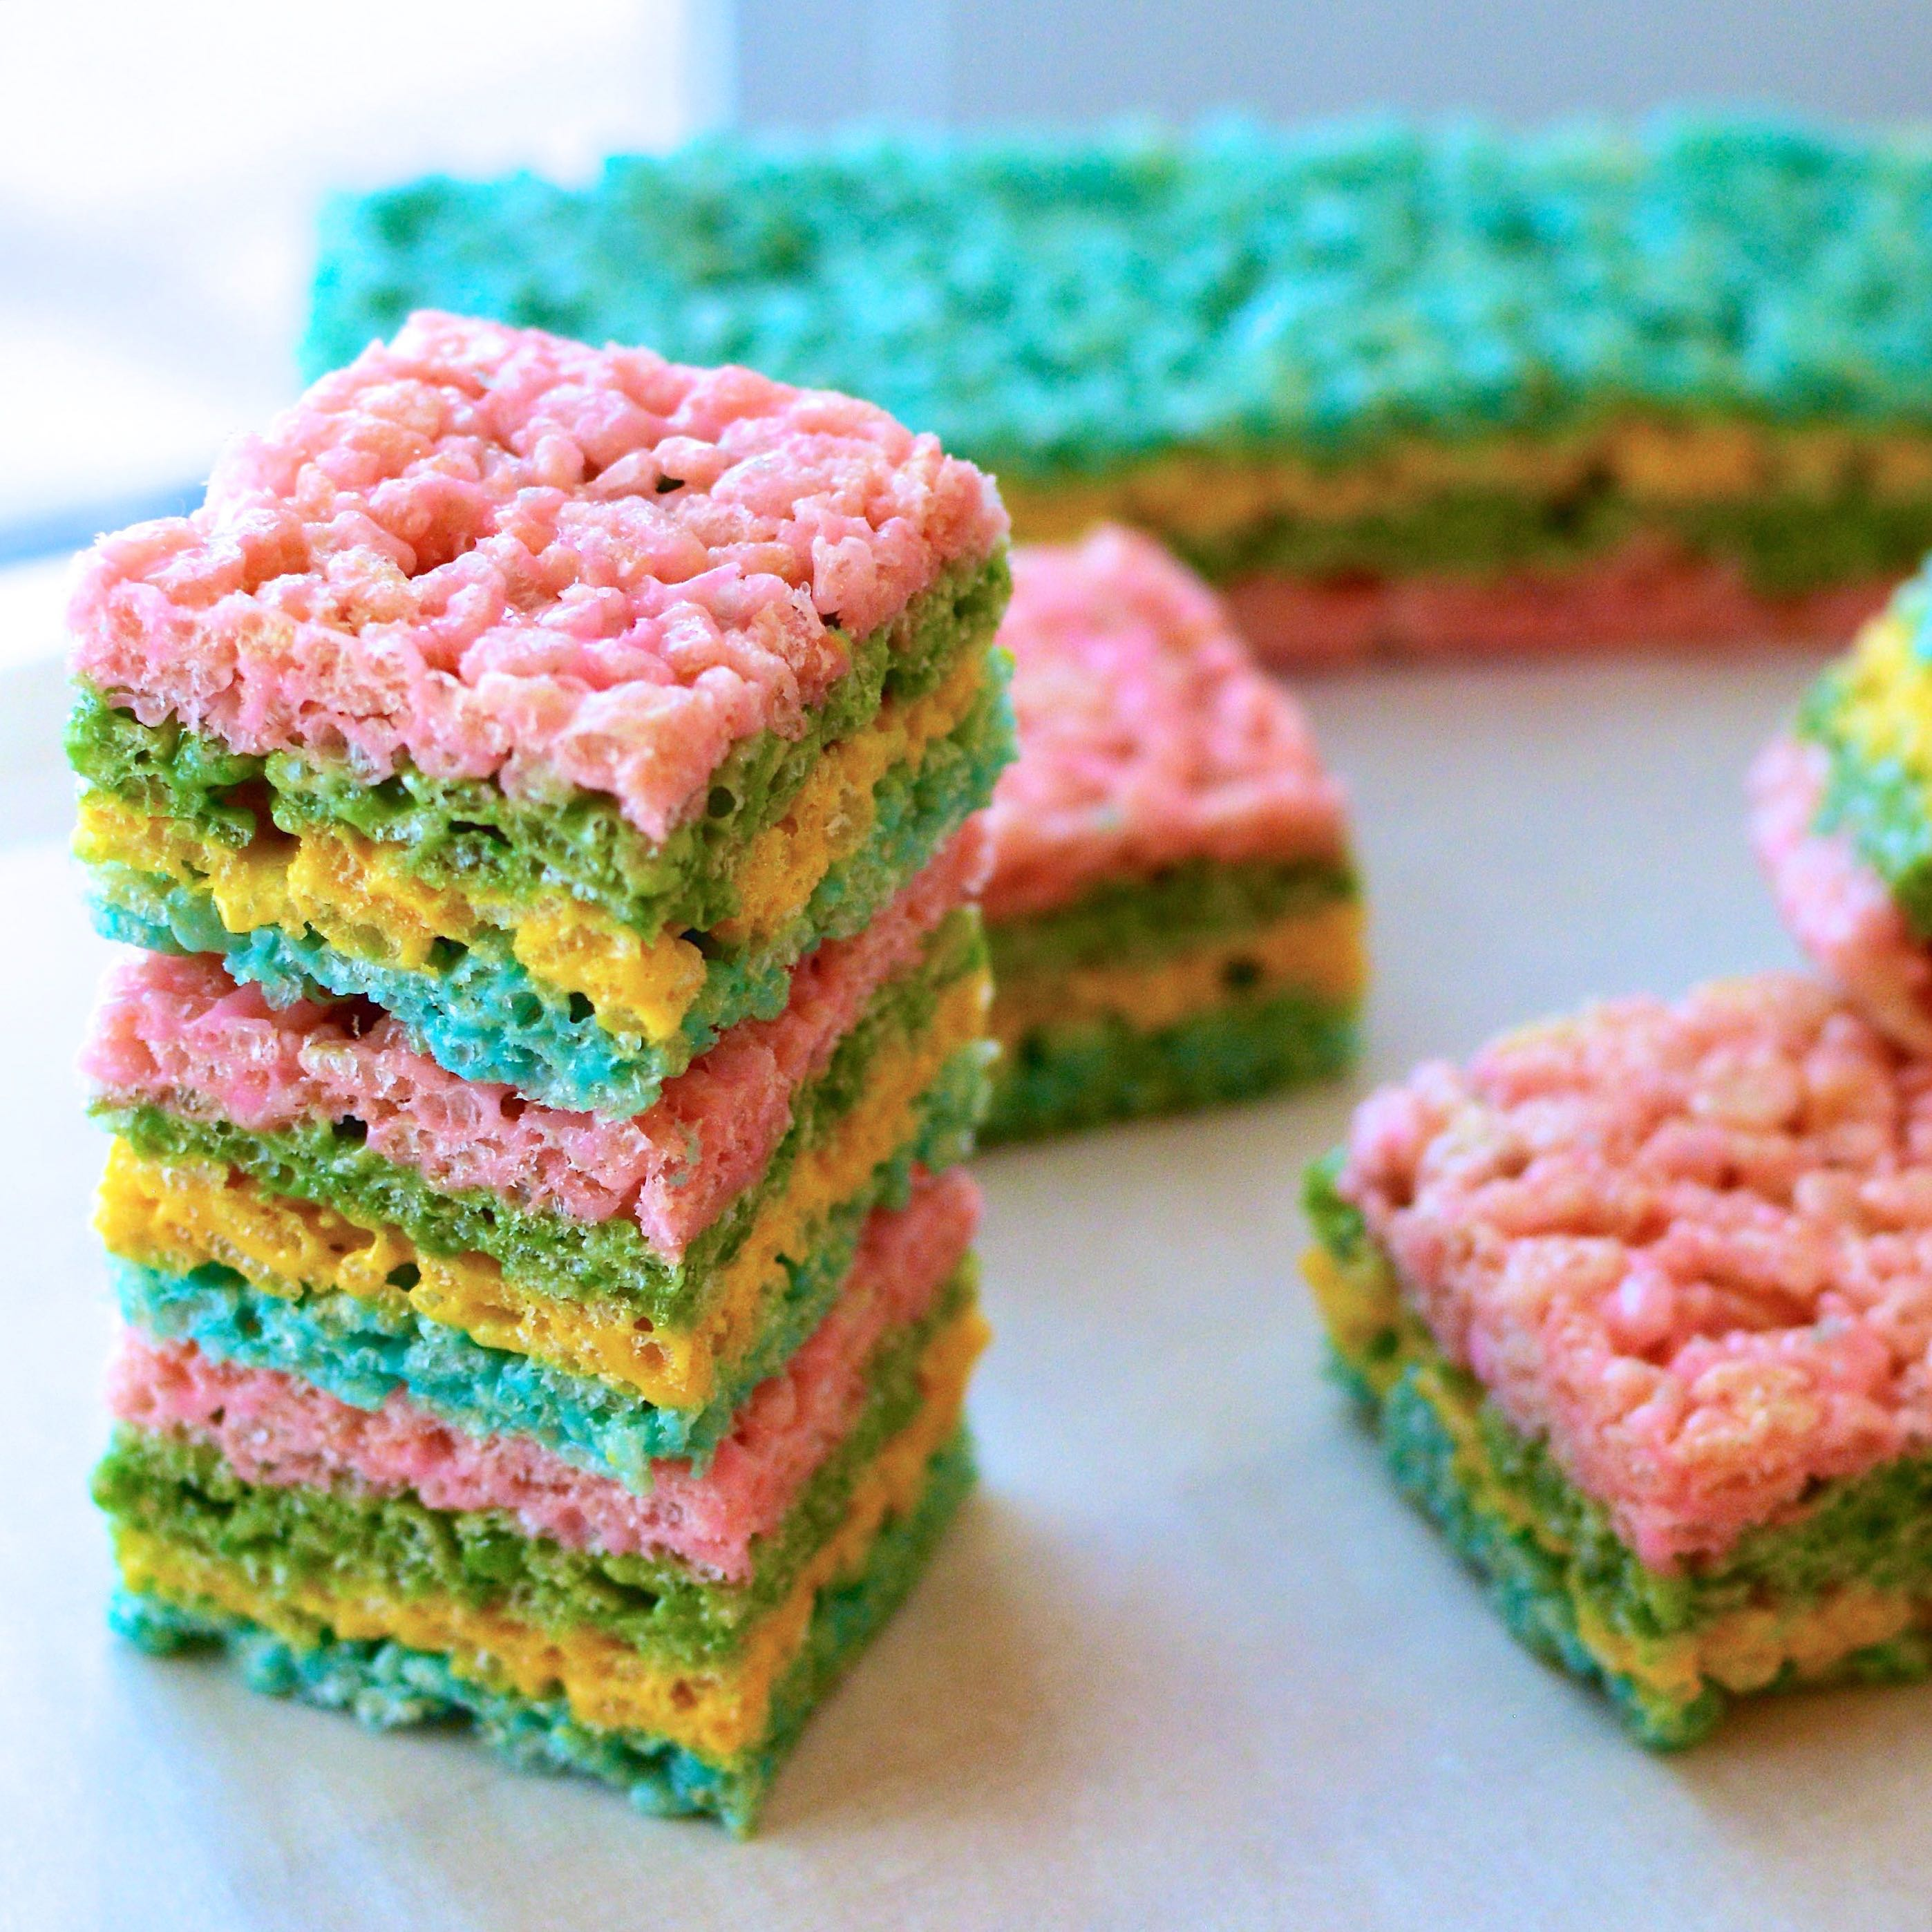 Krispy treats